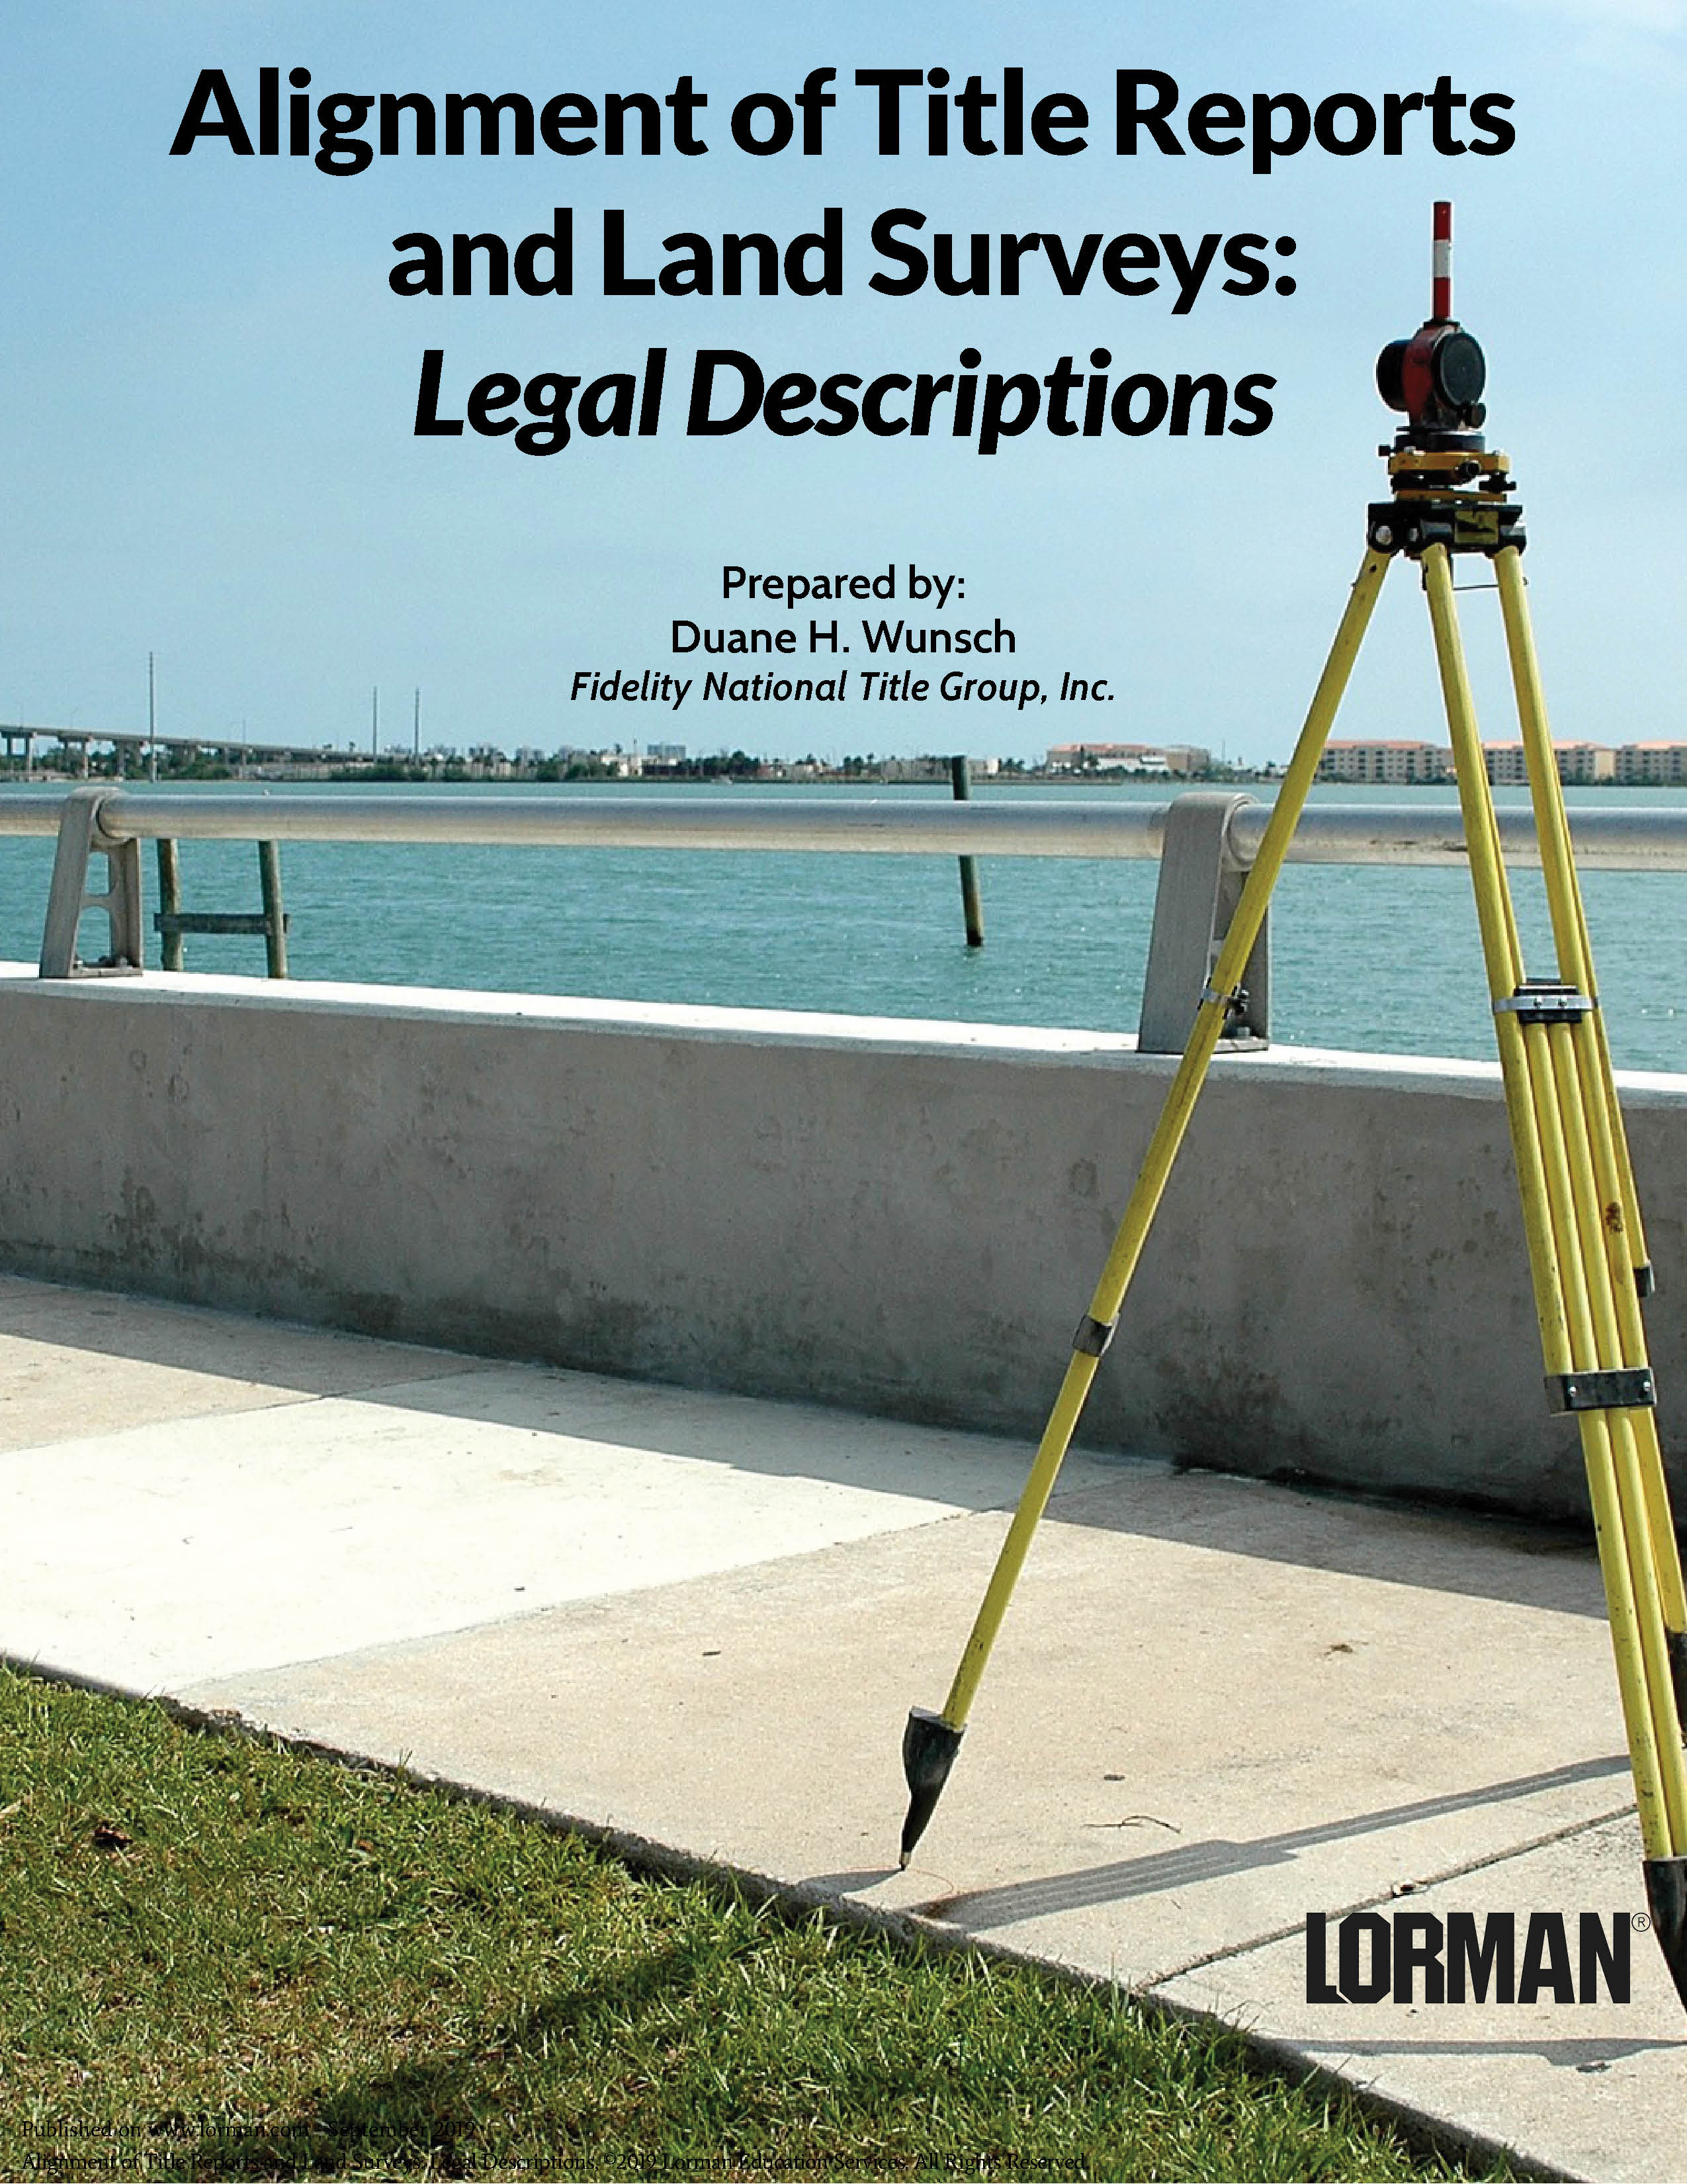 Alignment of Title Reports and Land Surveys: Legal Descriptions